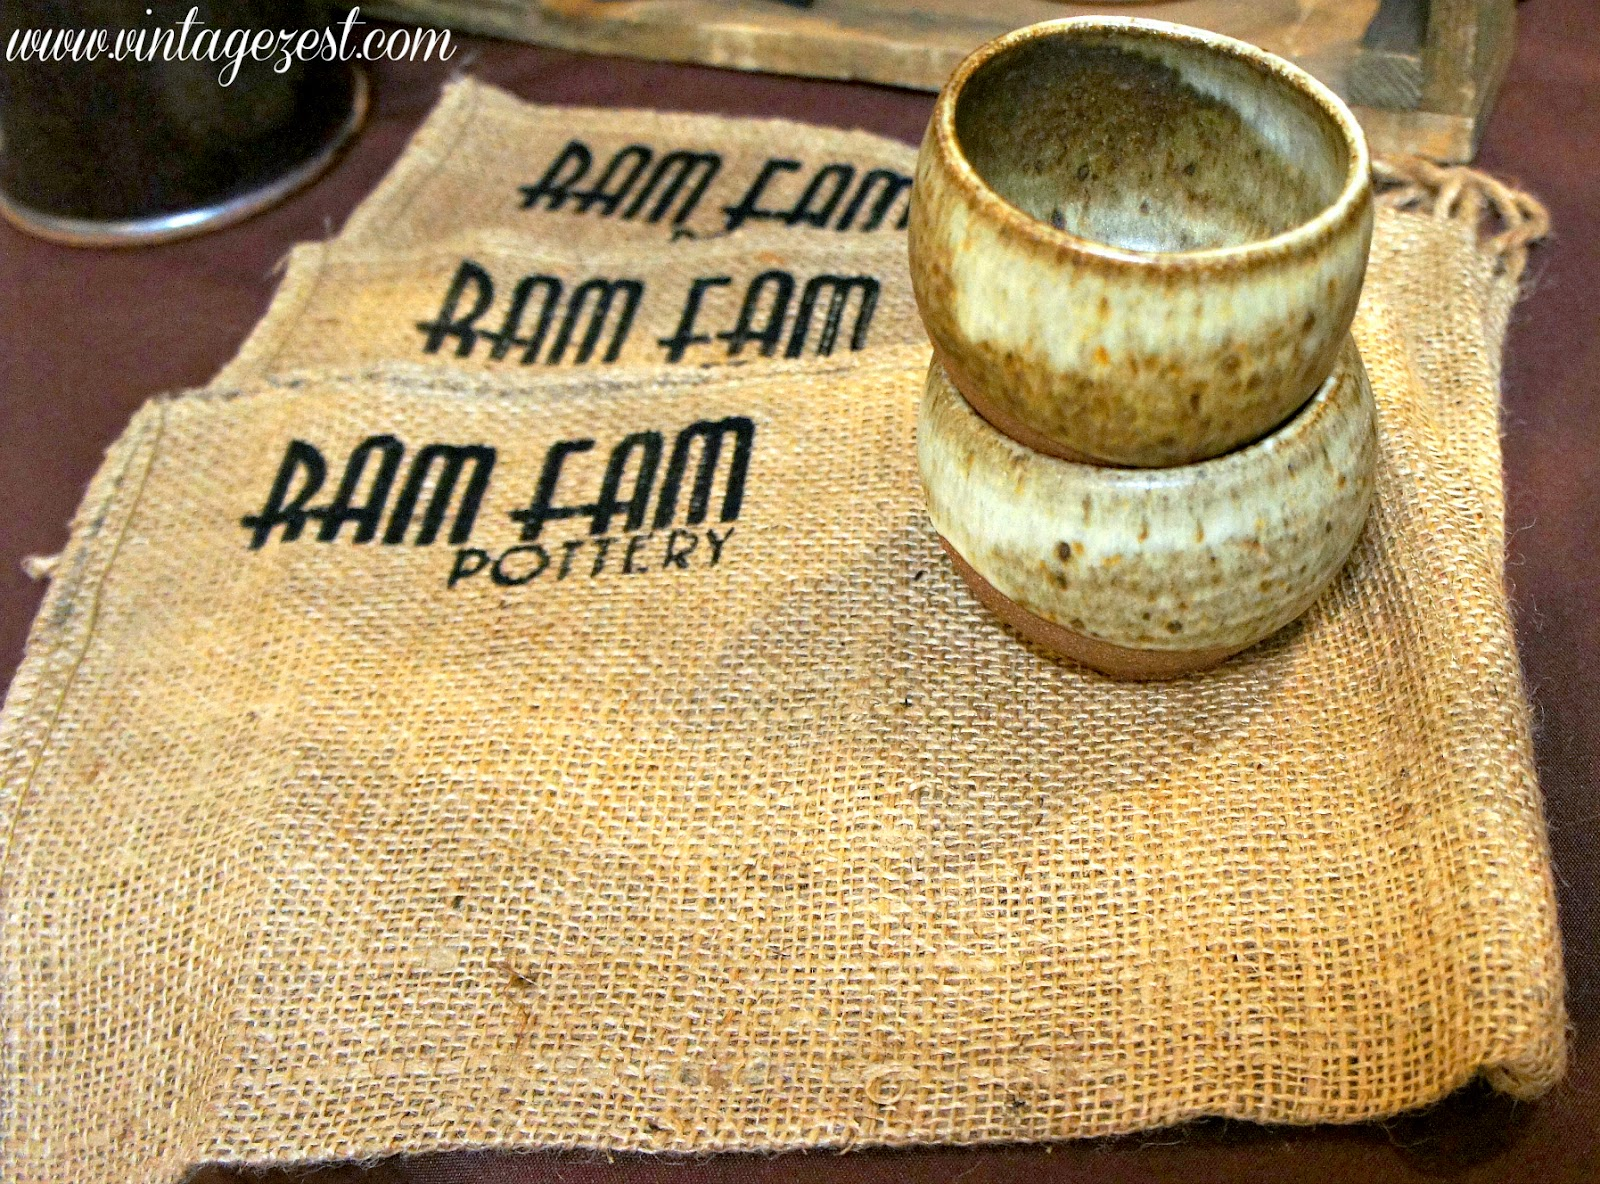 Ram Fam Pottery feature and Giveaway on Shop Small Saturday Showcase at  Diane's Vintage Zest!